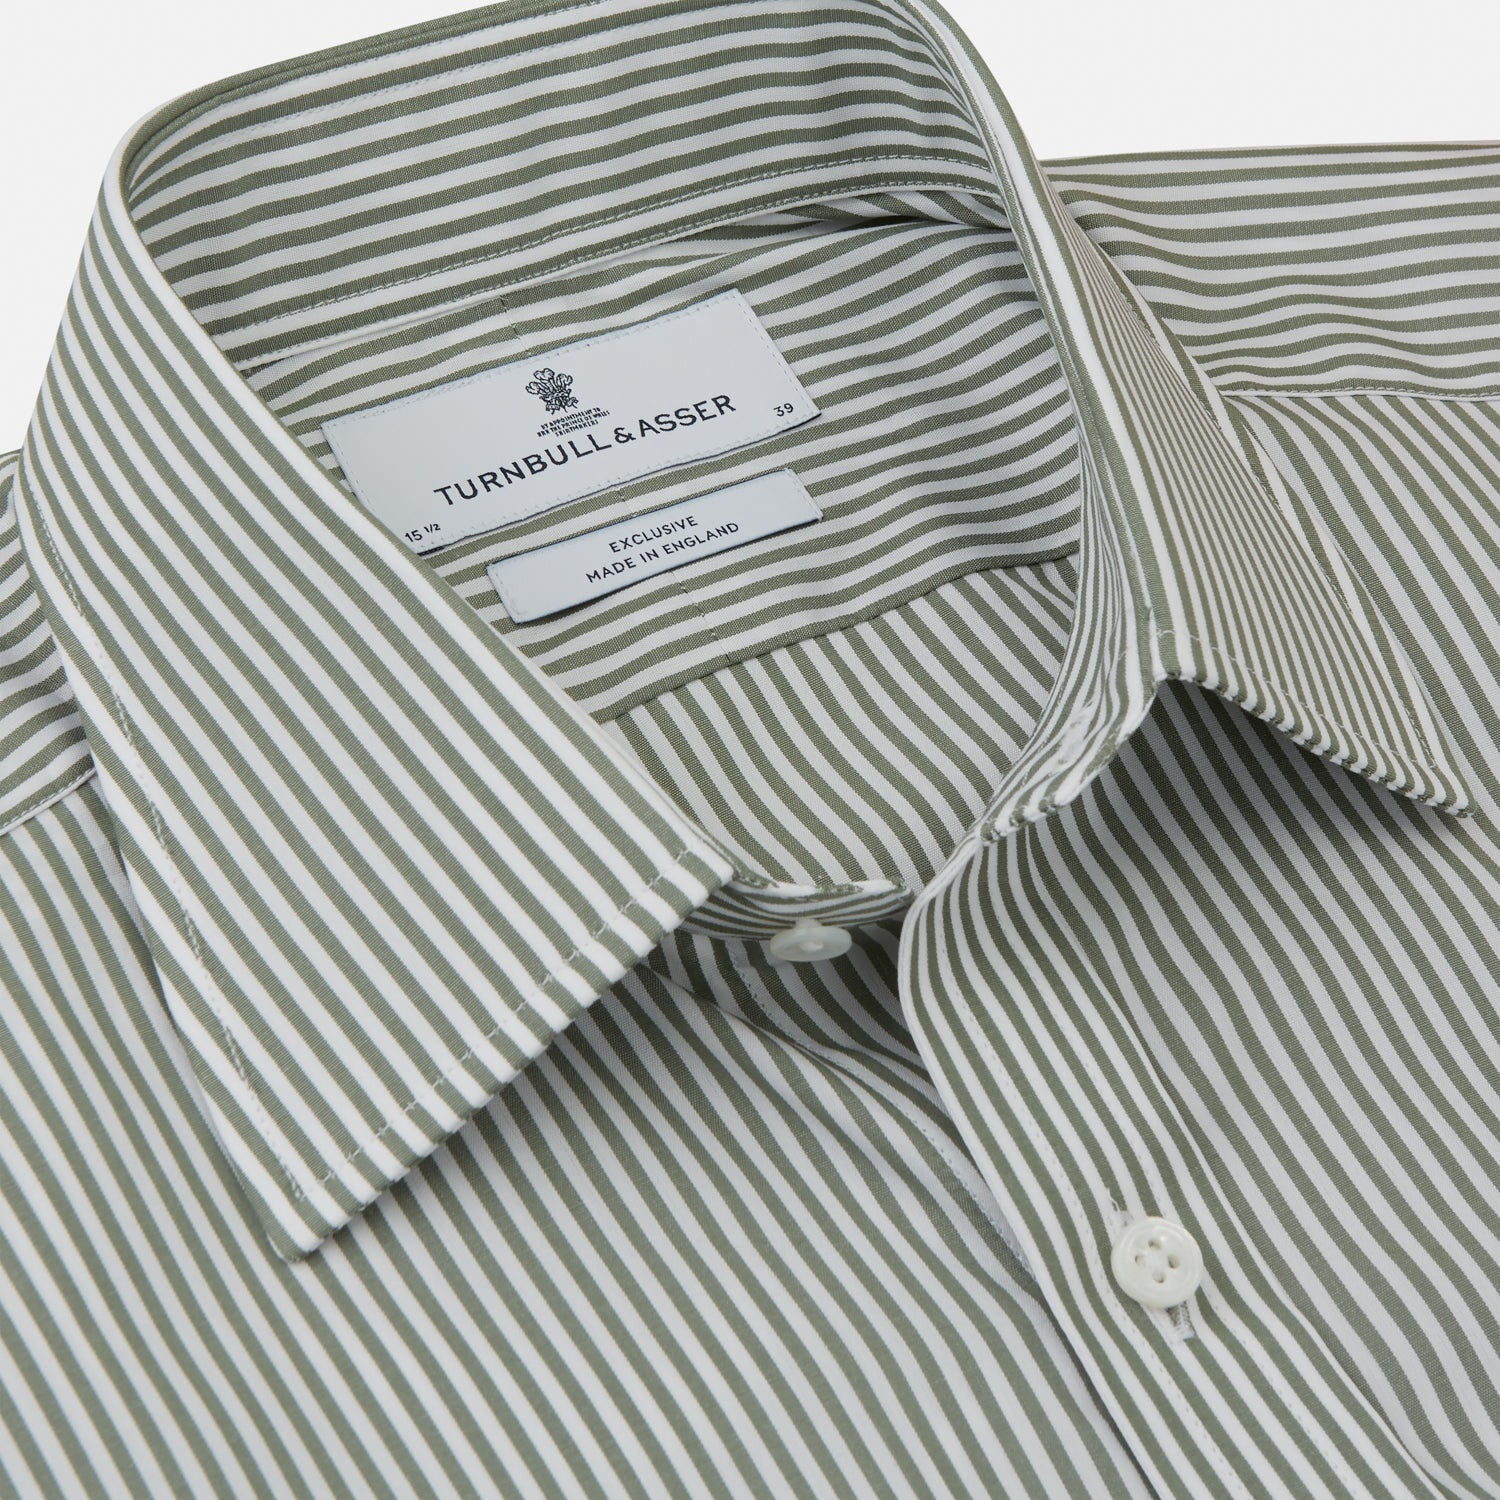 Green Bengal Stripe Regular Fit Shirt with T&A Collar and 3-Button Cuffs